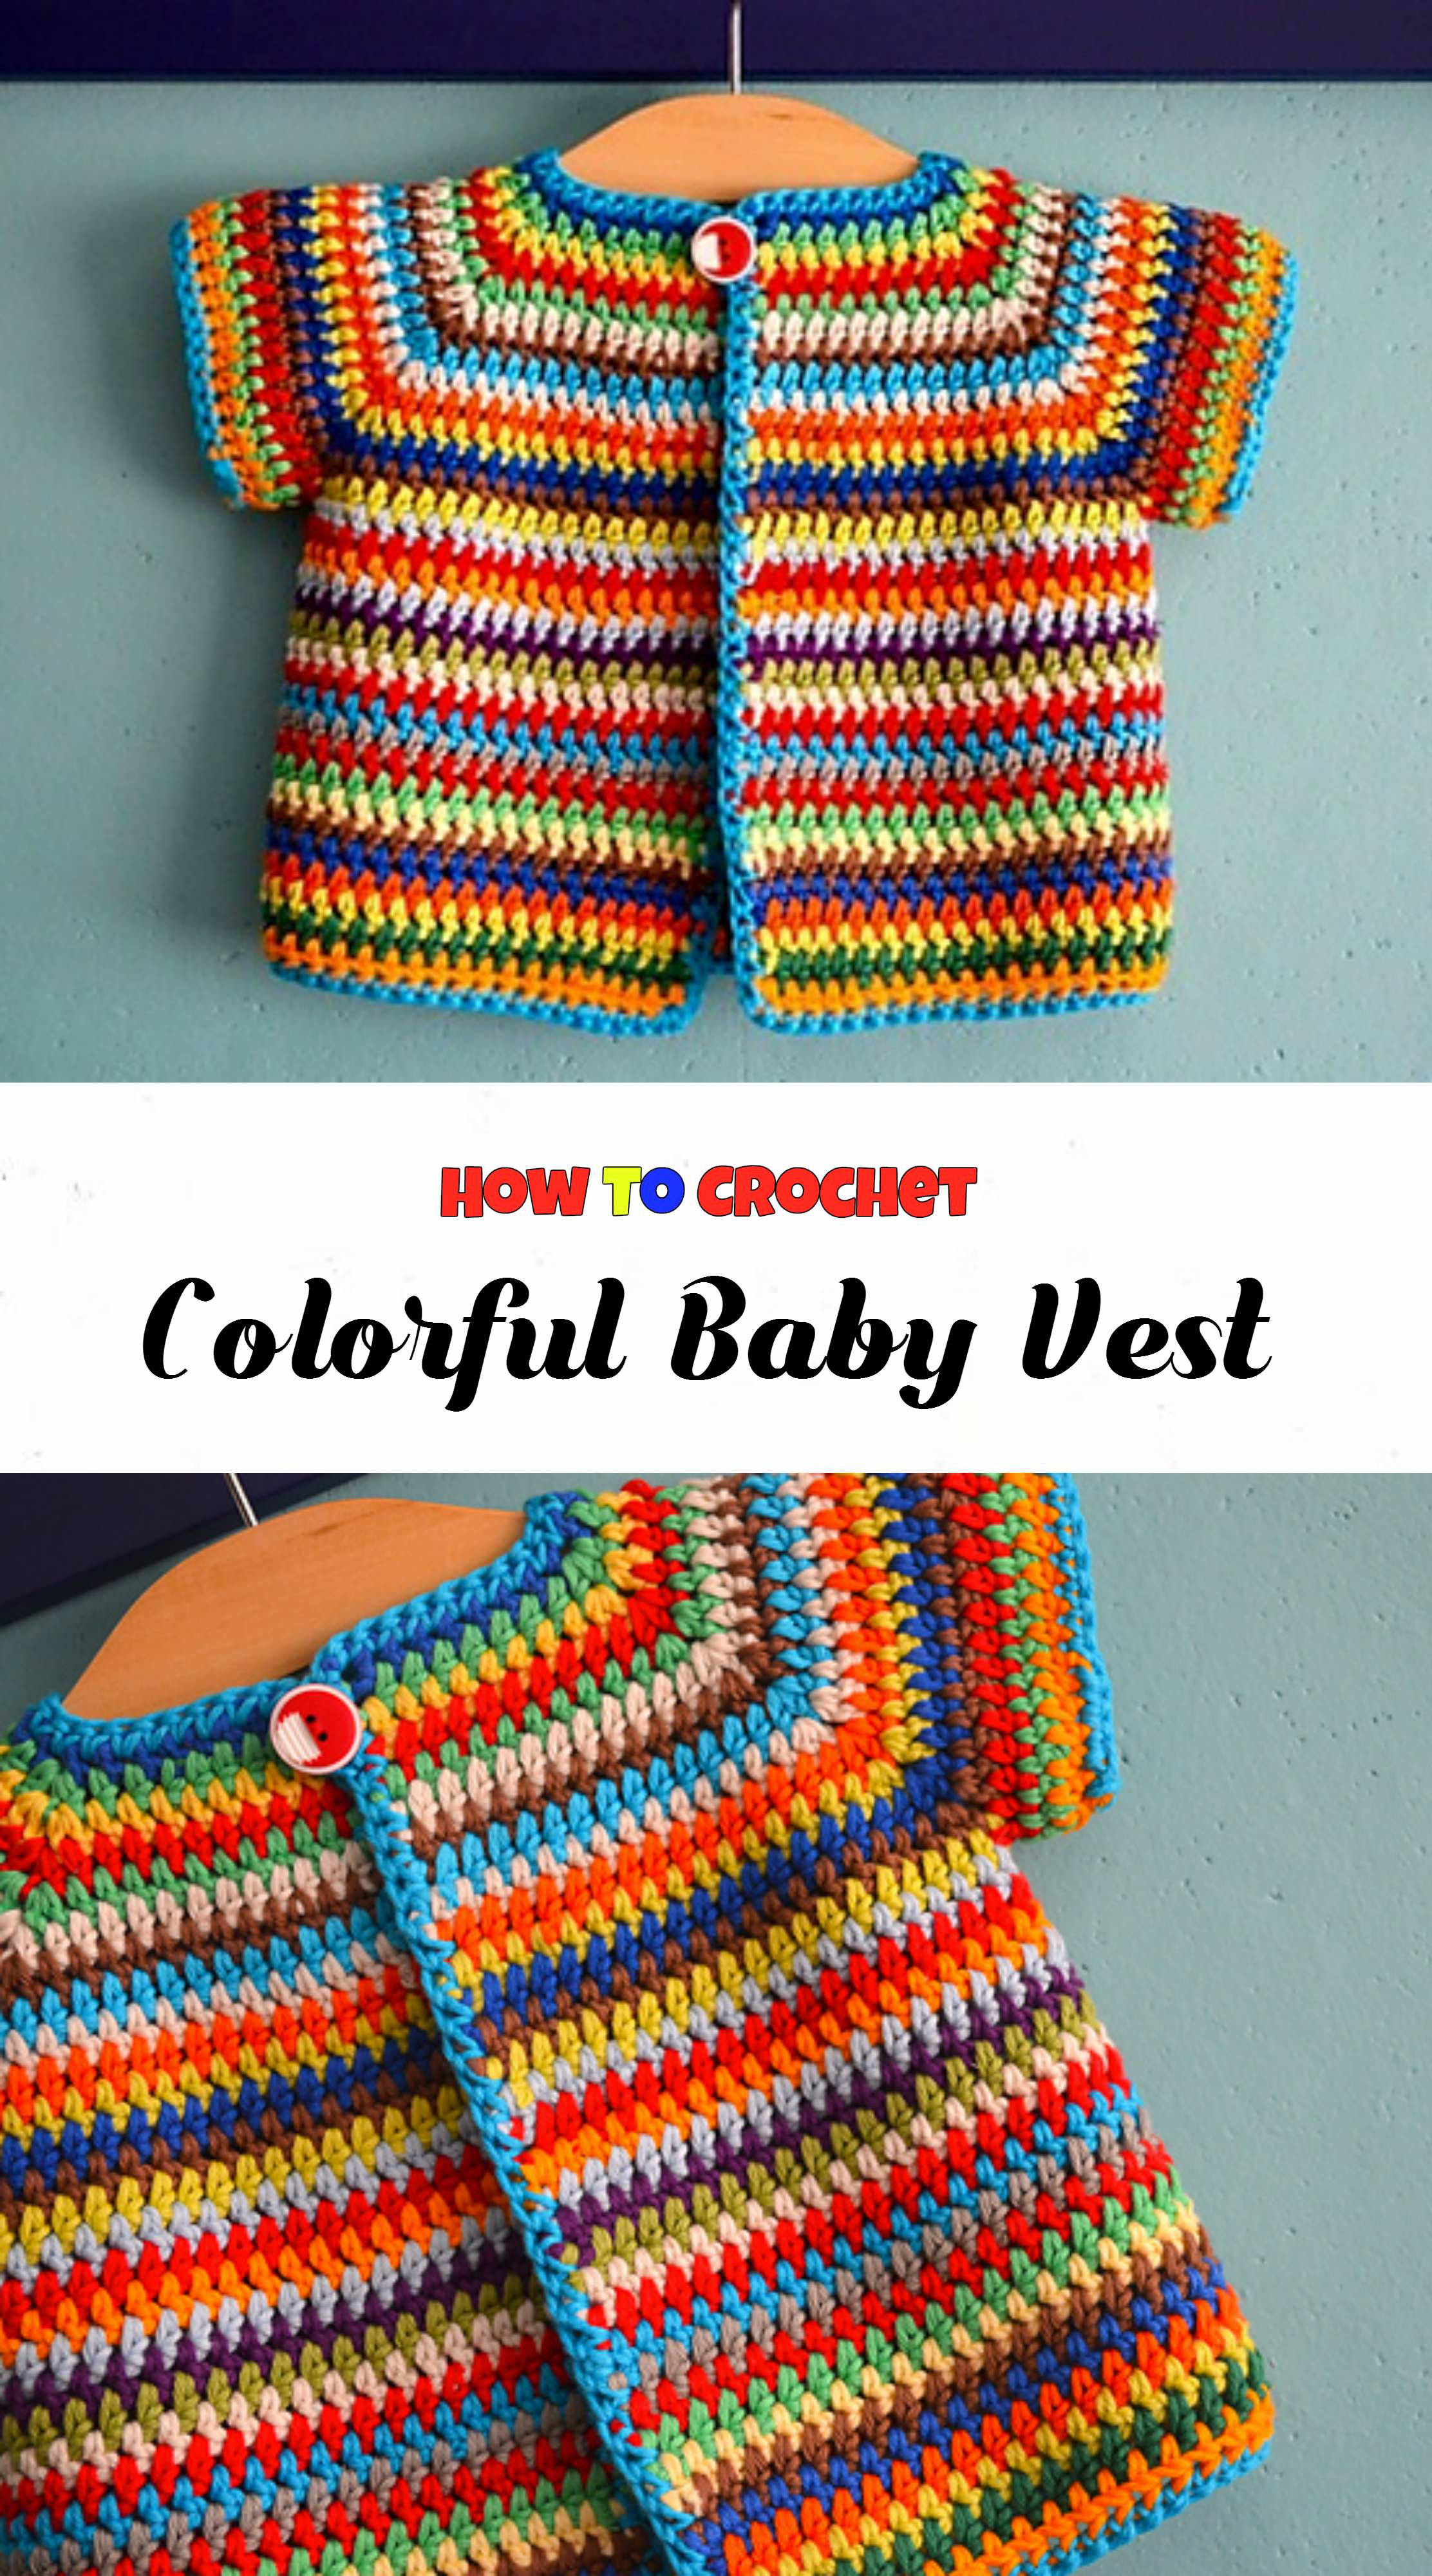 here we have very beautiful vest for your babies and of course with free pattern by annelies baes thanks to author for awesome design and clearly explained